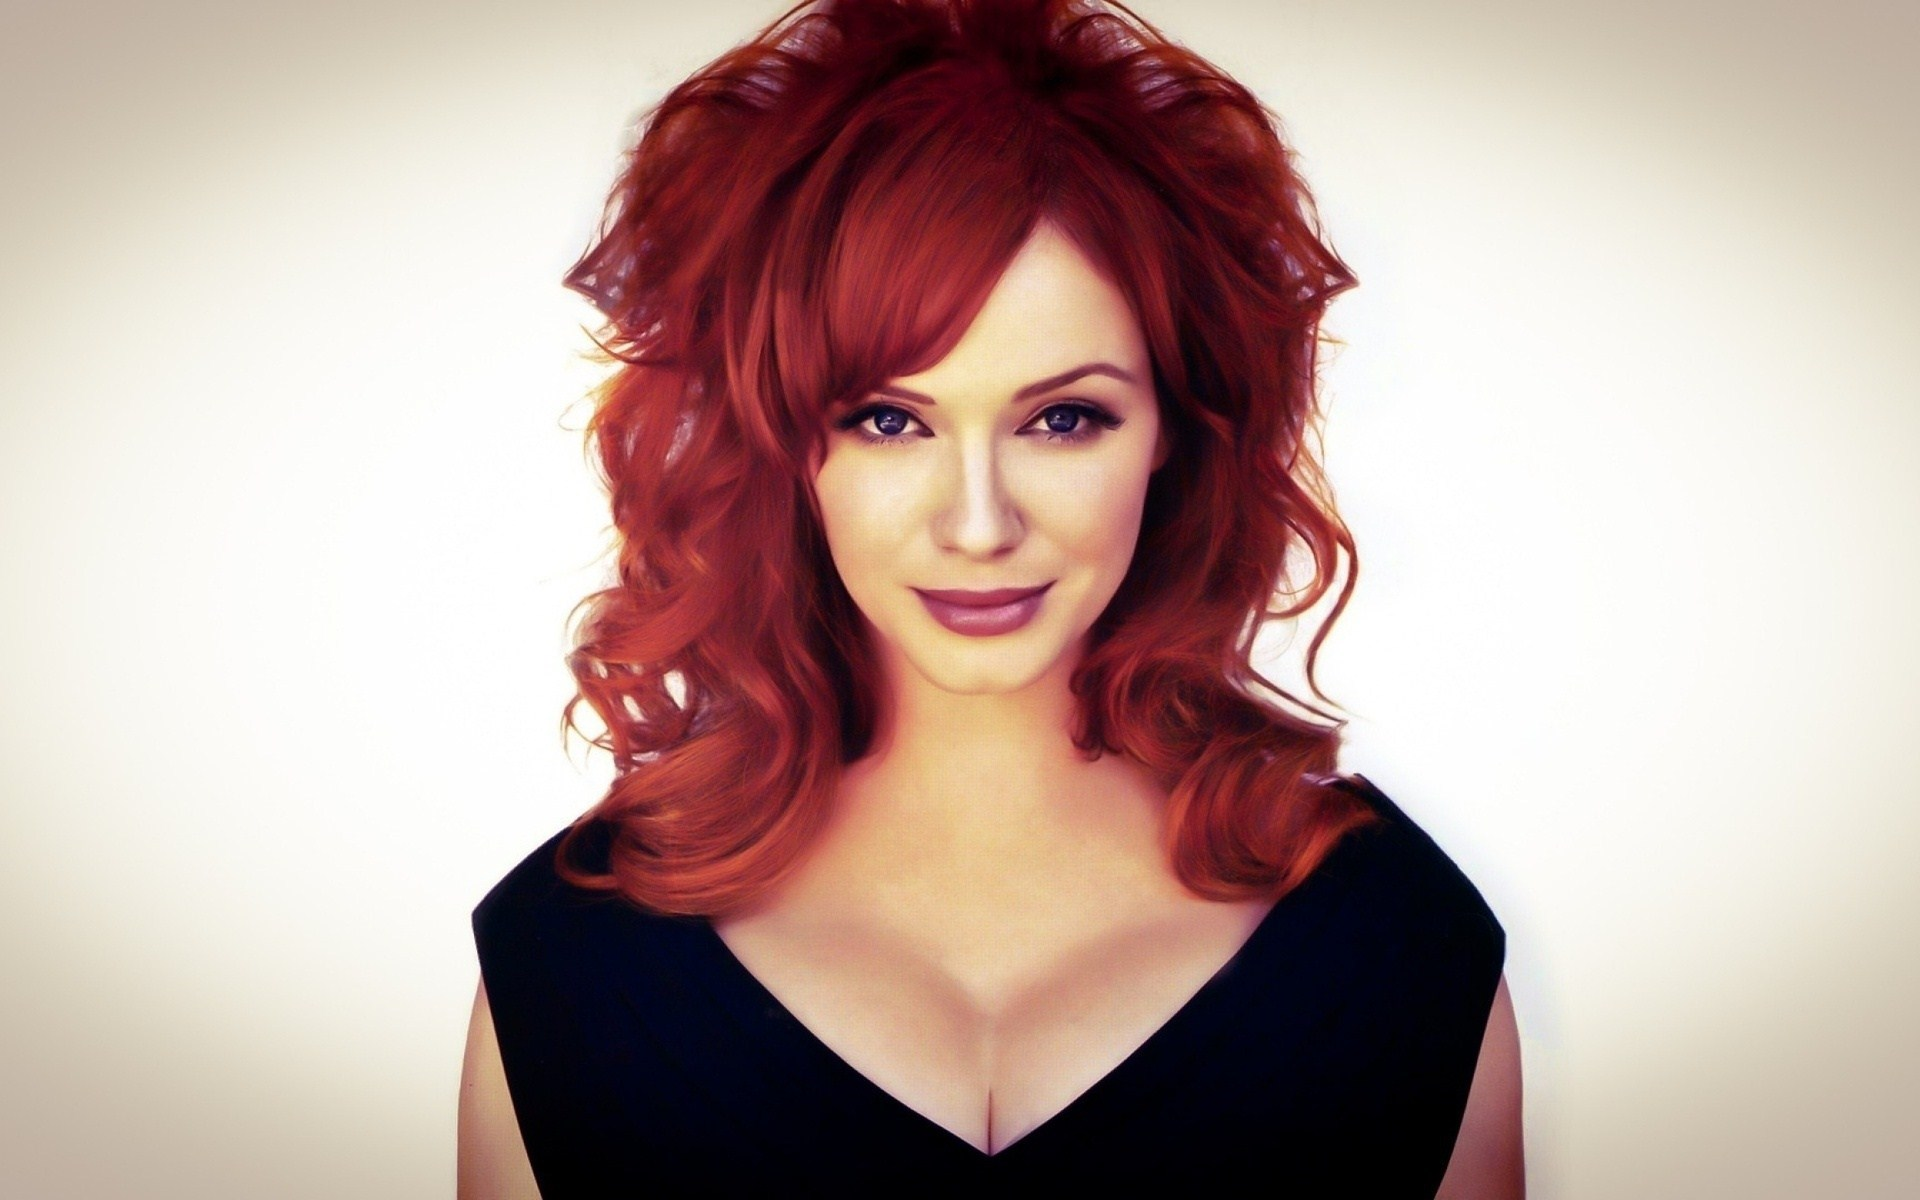 Beauty Redhead Christina Hendricks American Actress